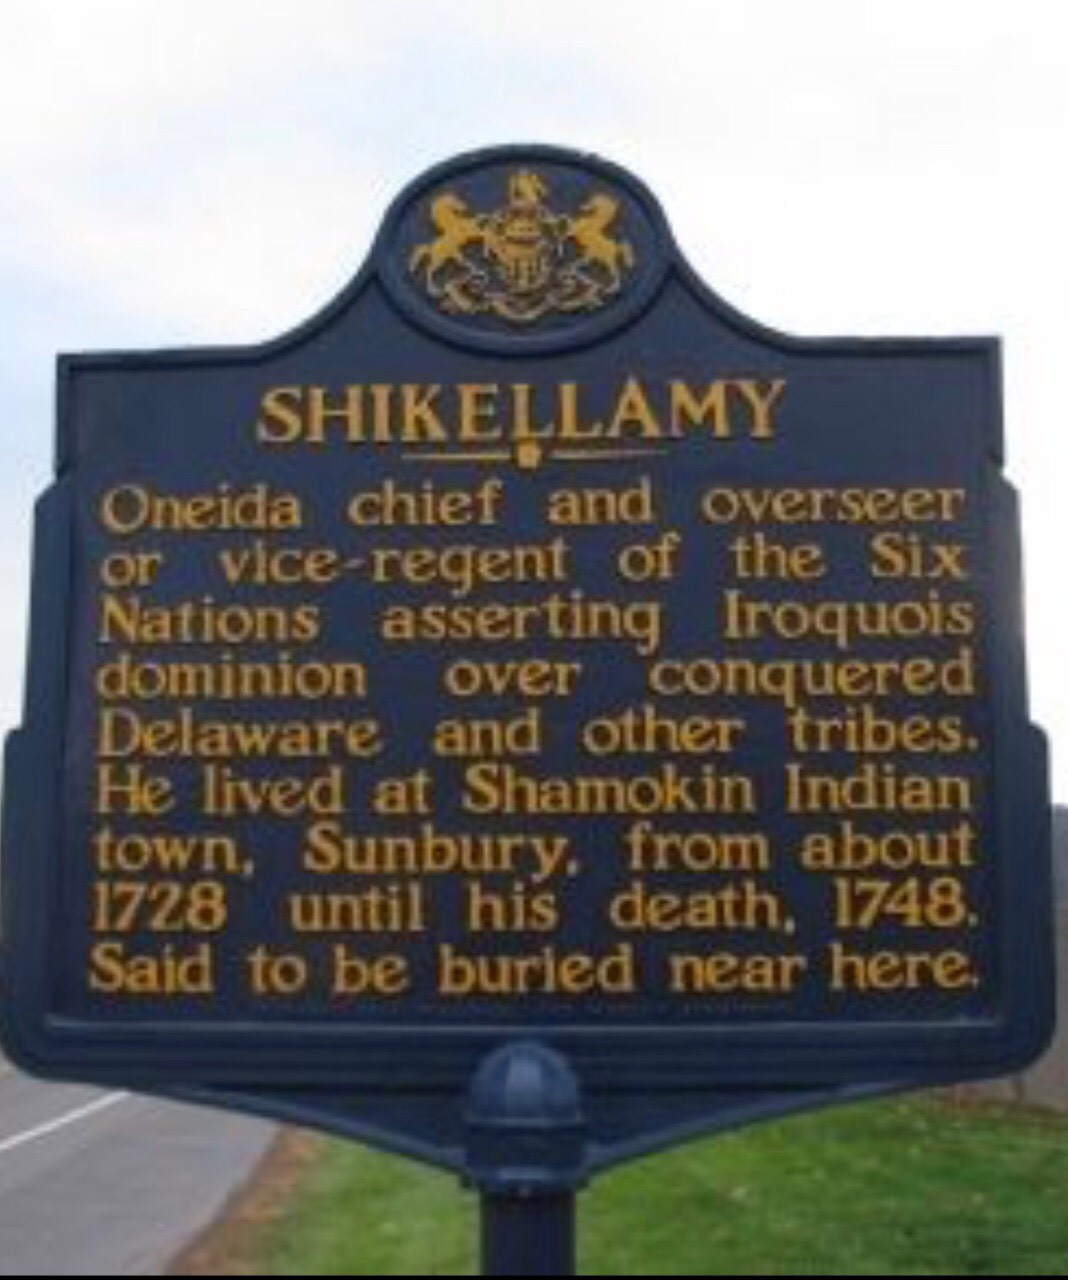 This photo is of the historical marker that tells the history of Shikellamy.